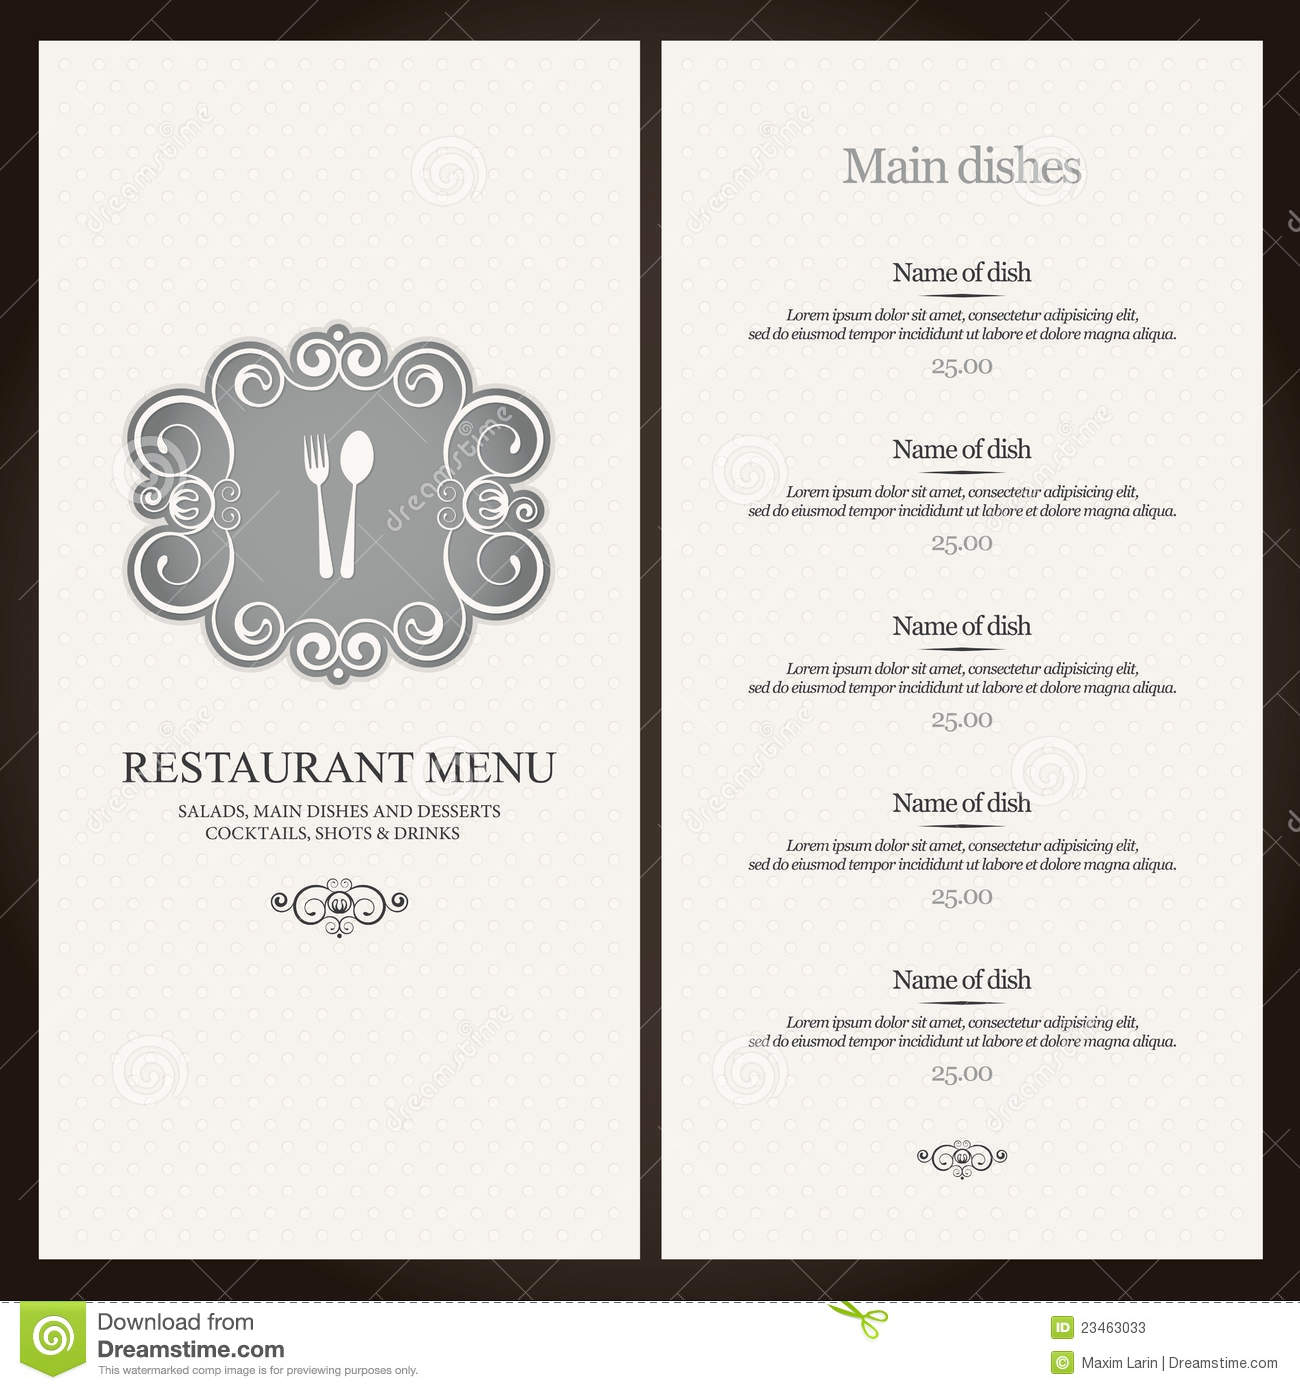 Restaurant Menu Design Stock Photos Image 23463033